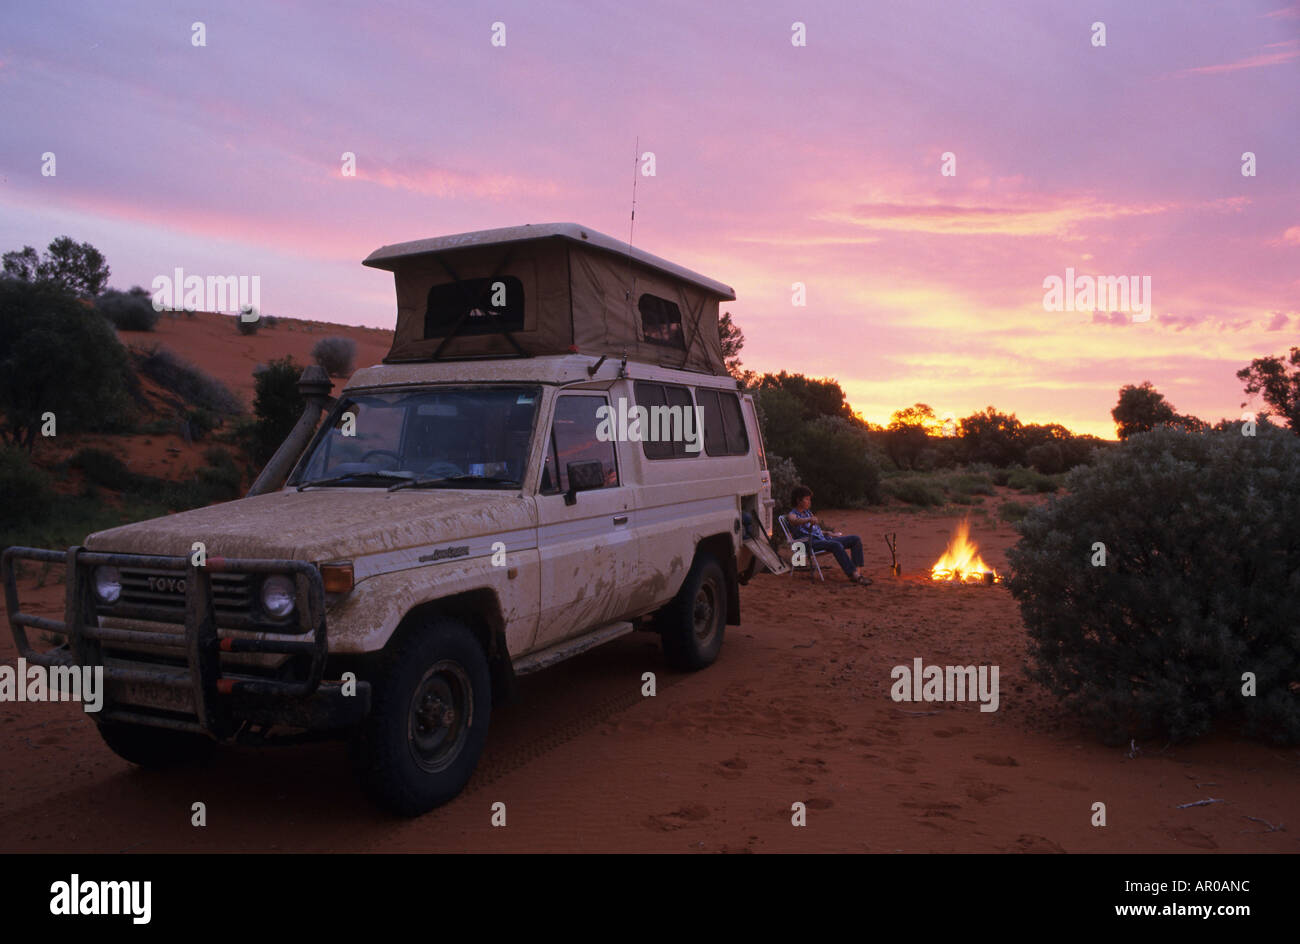 Toyota Landcruiser with roof top tent, camping in desert in the evening, sunset, South Australia, Australia - Stock Image